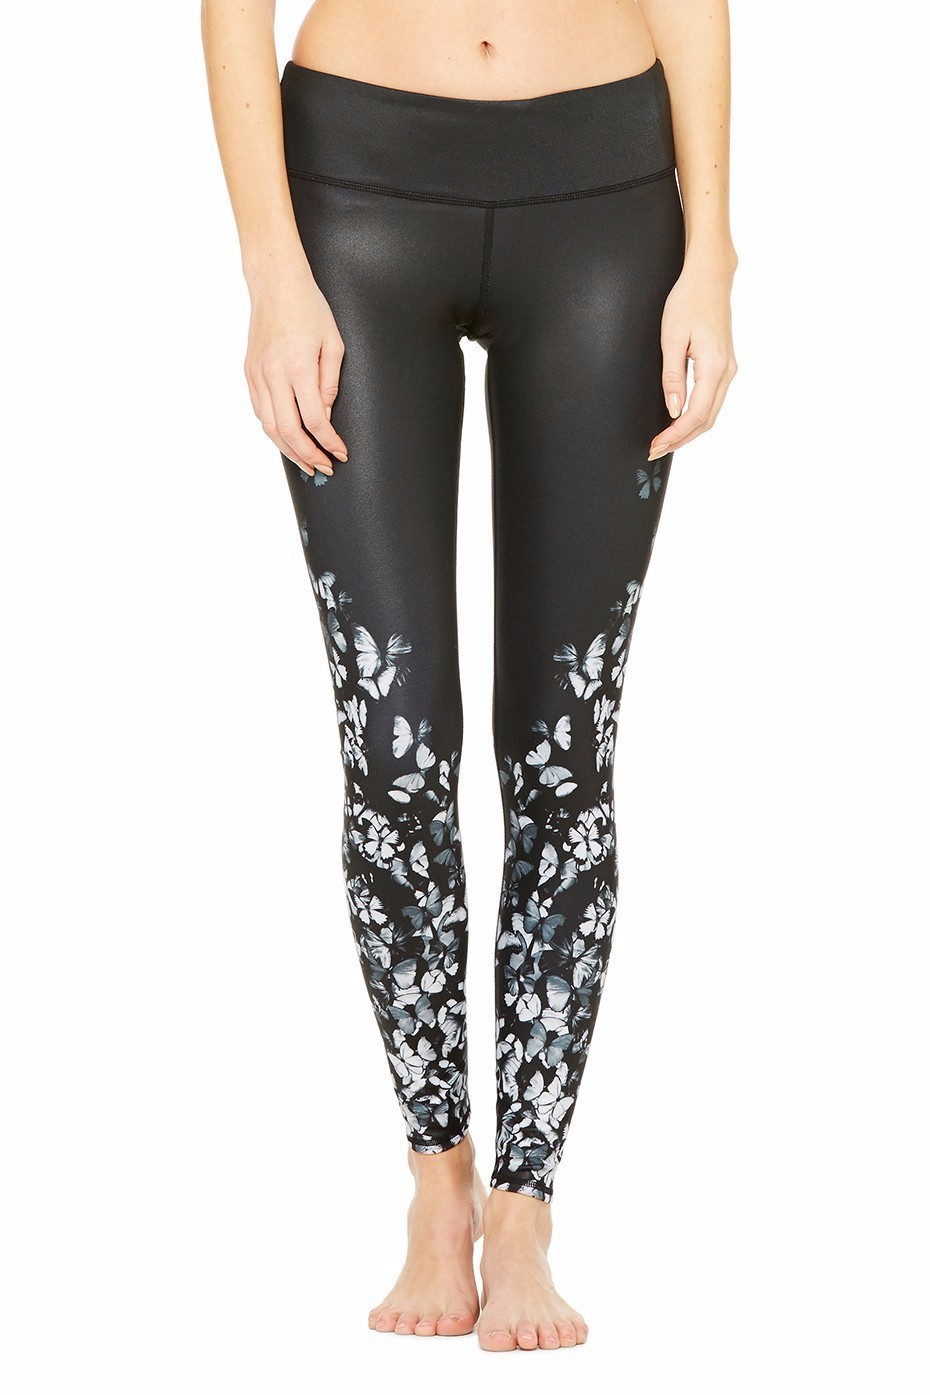 Look and feel your best with PureGem Printed Leggings workout clothes. It is trendy and comfortable to wear.